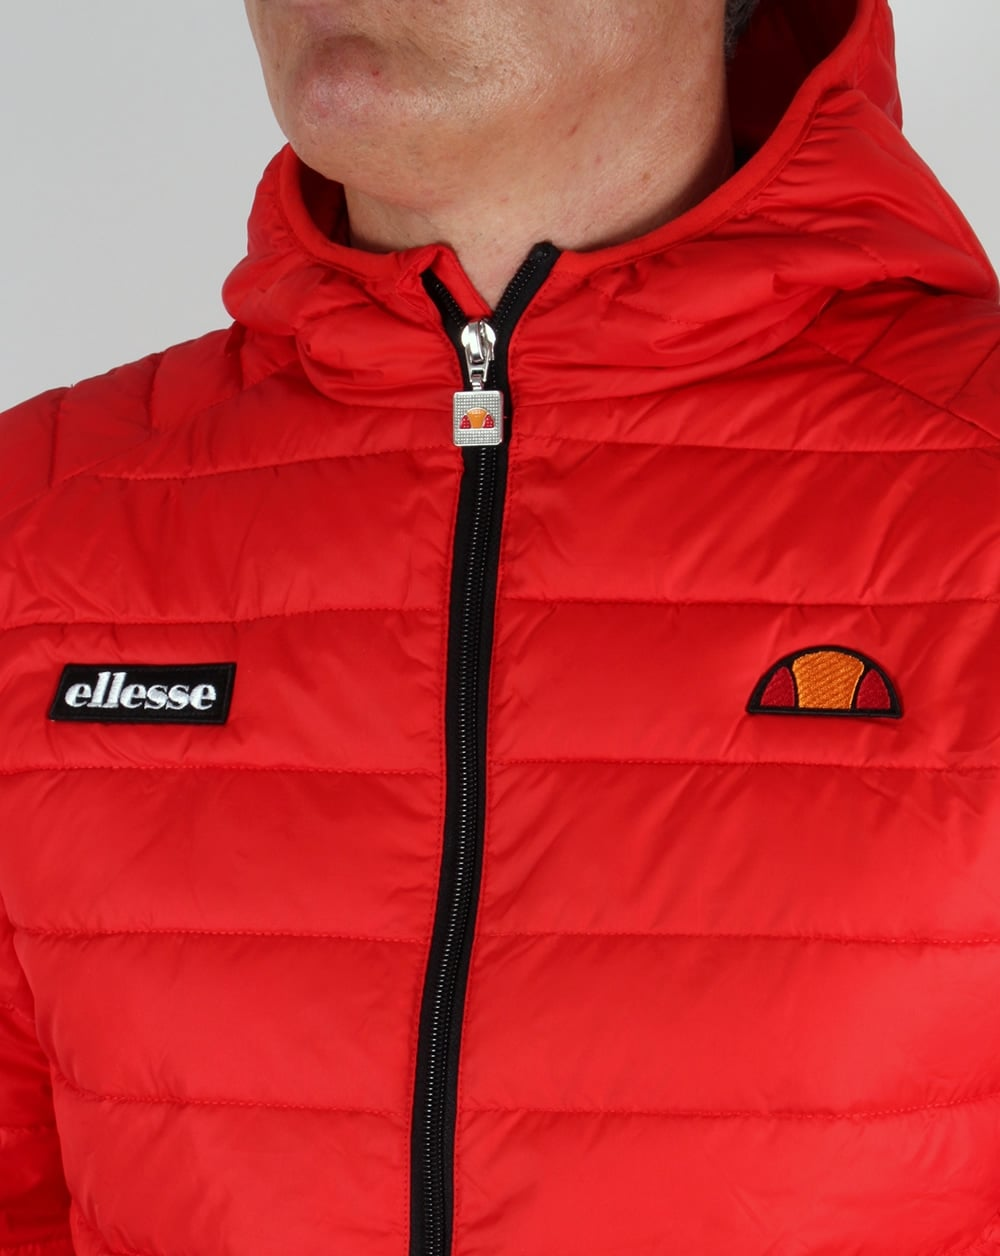 Ellesse Lombardy Jacket Red, Bubble, Padded, Puffer,ski ...